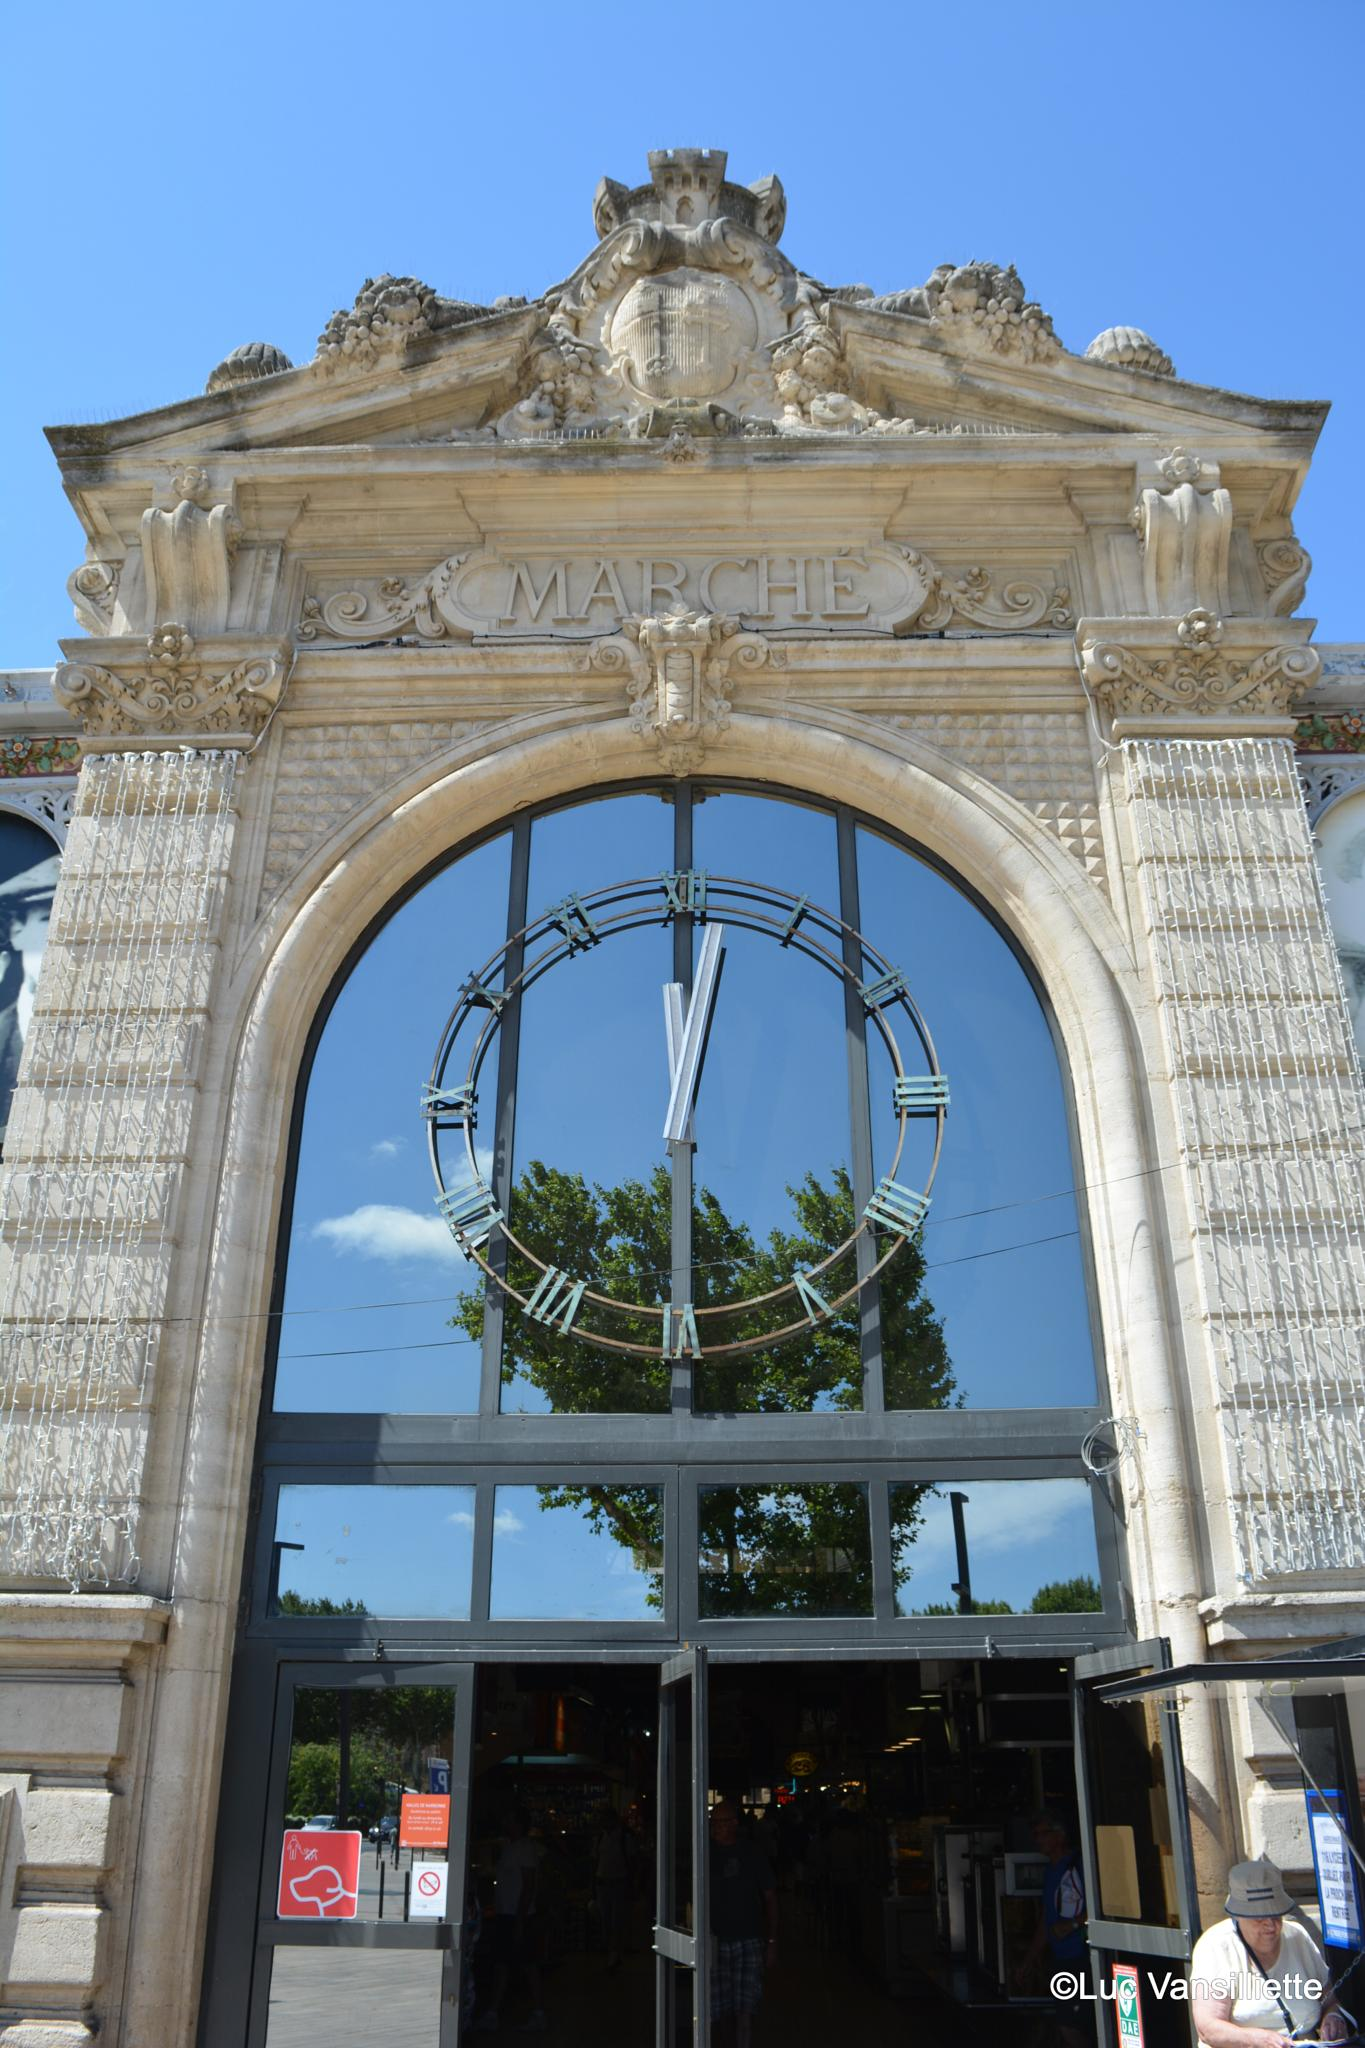 Entrance of Narbonne covered Market  by Luc Vansilliette